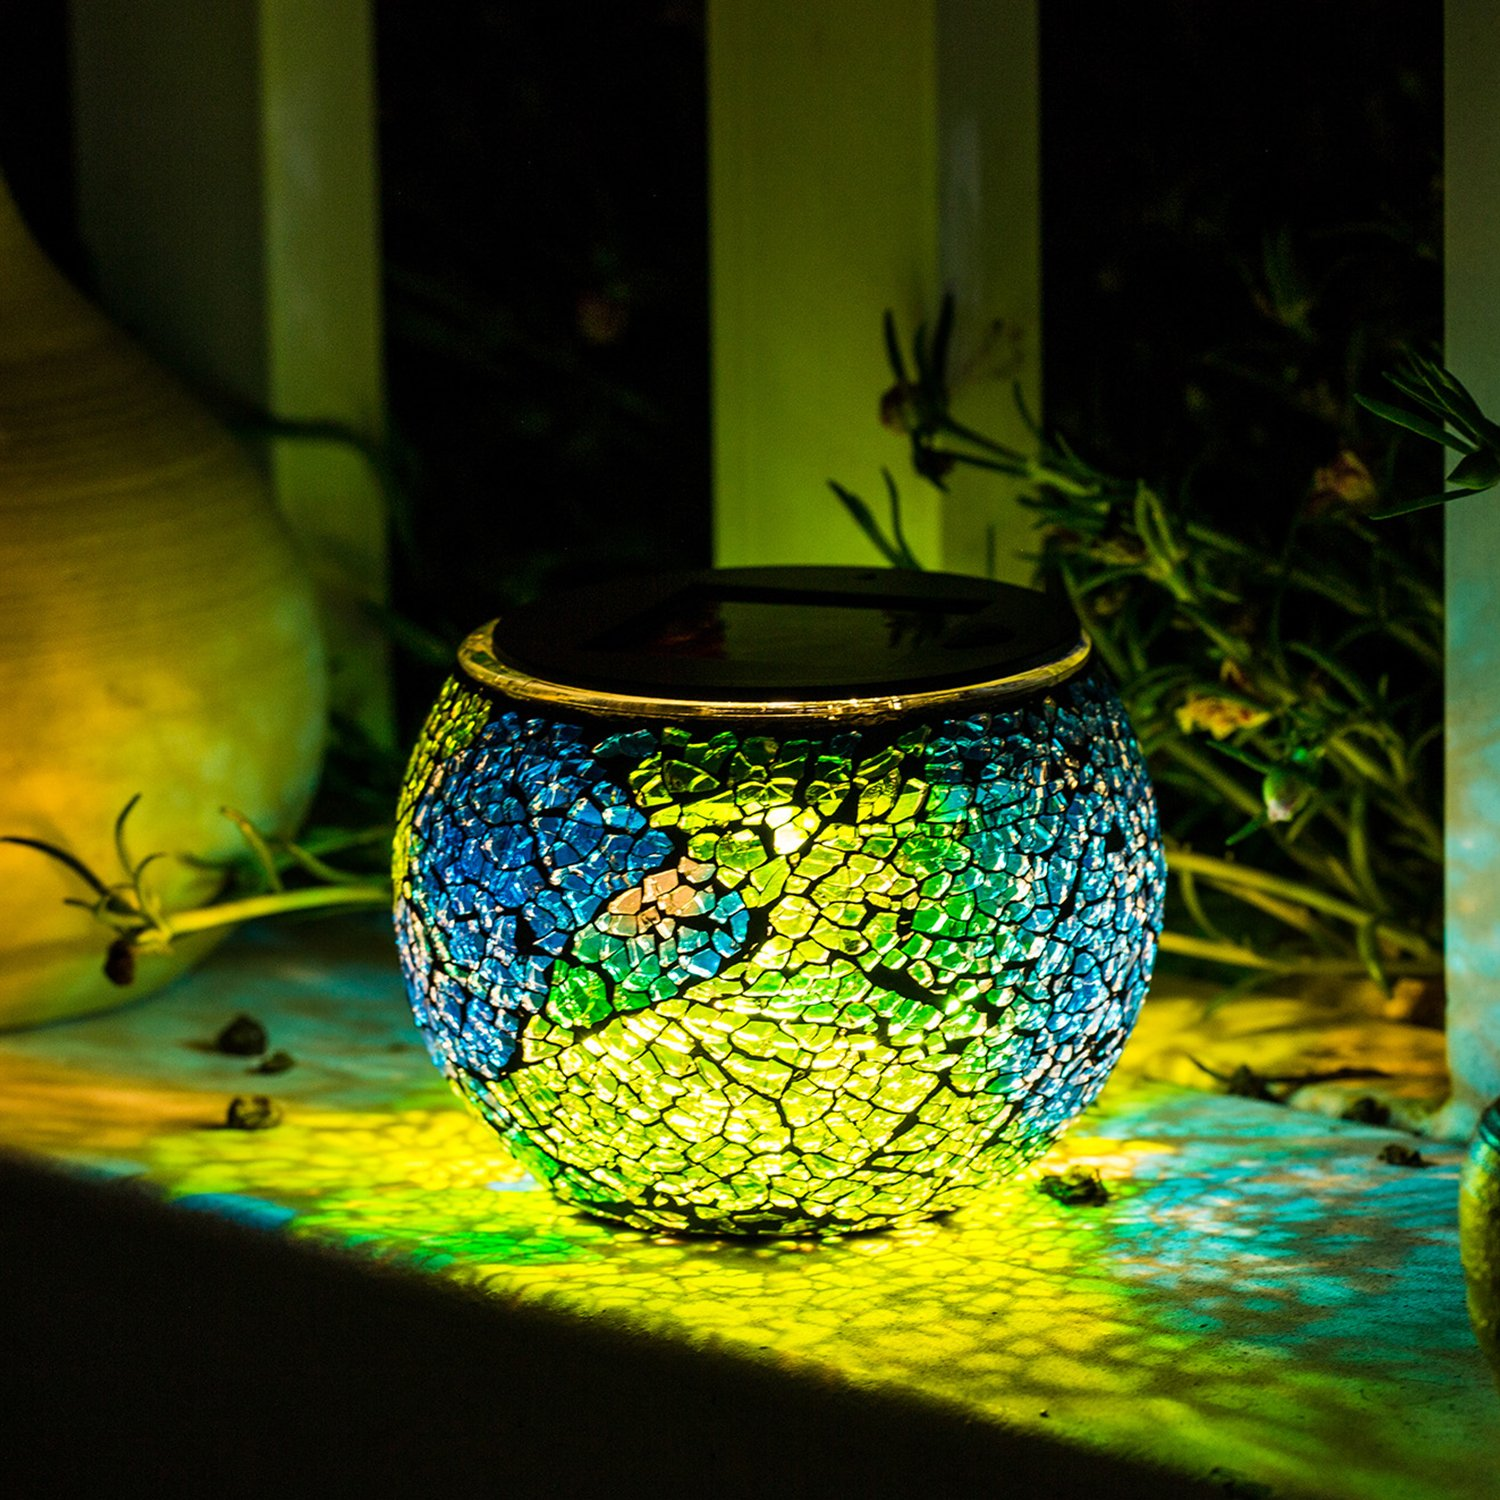 mosaic table garden find line bella green outdoor accent get quotations solar lights kinna pack glass ball lamp waterproof for home ashley furniture round dining high nightstand